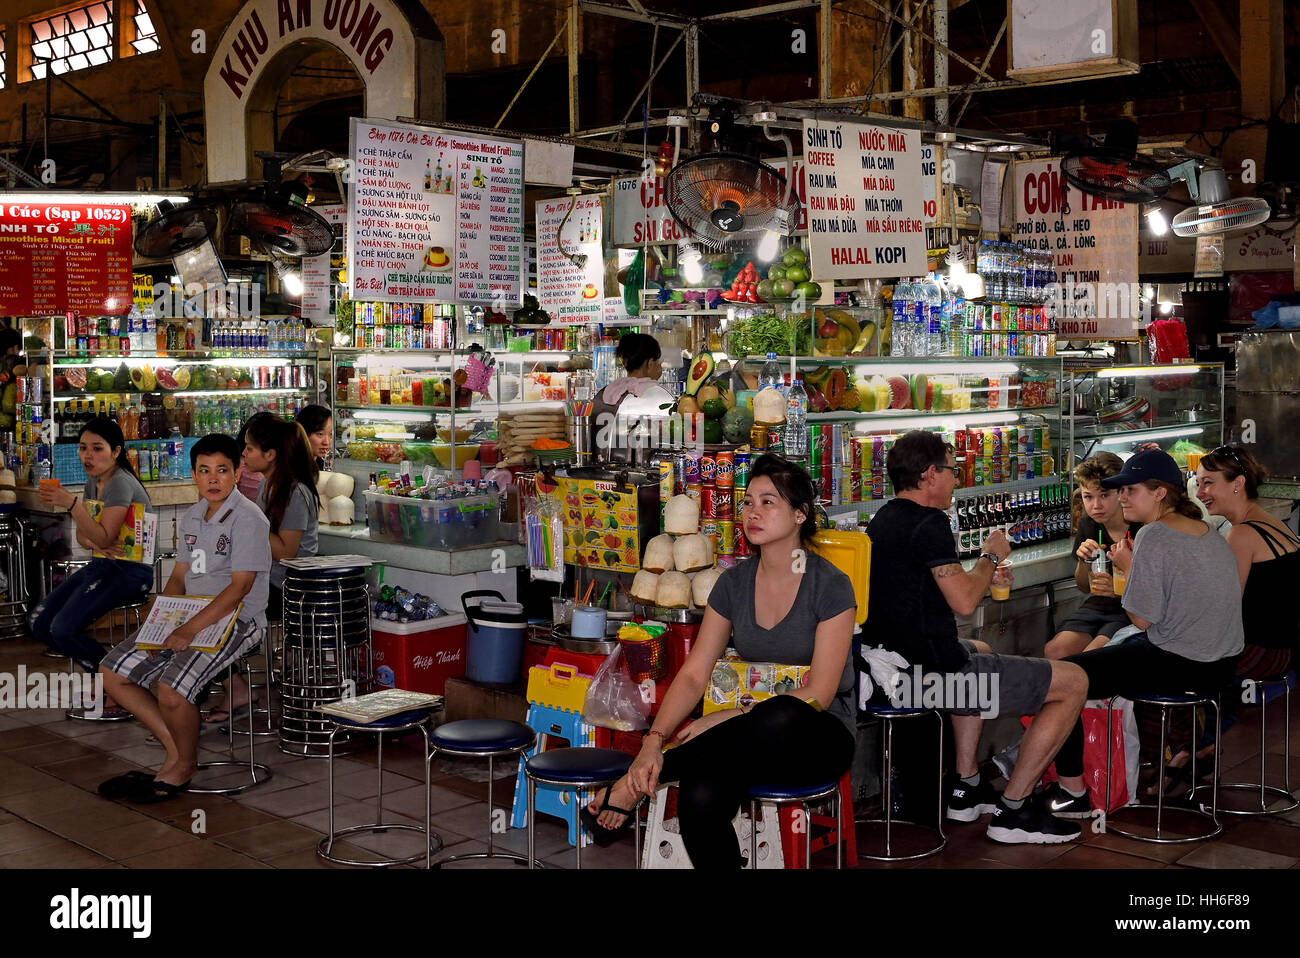 Stock Photo - Street Food Night Market Ho Chi Minh City Center (HCMC) Saigon ( dizzying high octane city of trade commerce and culture) Socialist Republic of Vietnam